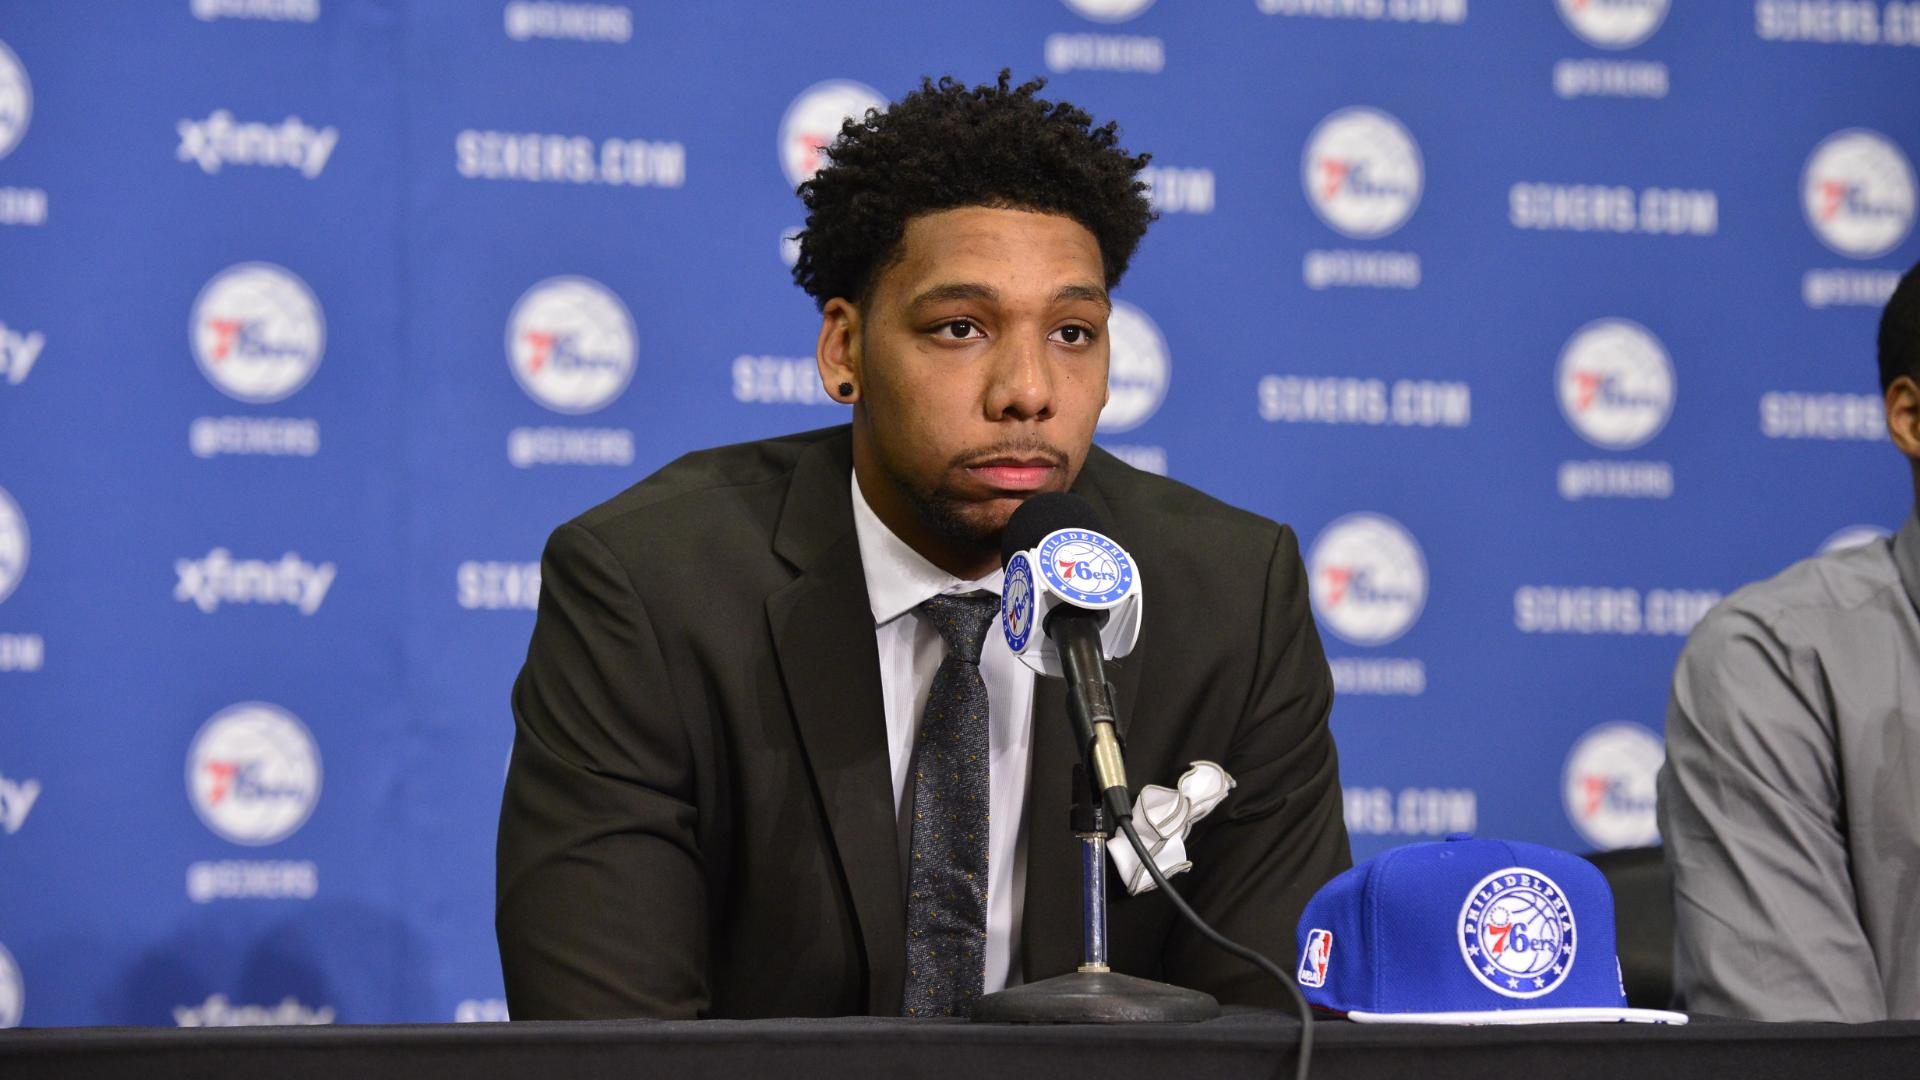 Sources: 76ers to explore trades for Okafor, Noel